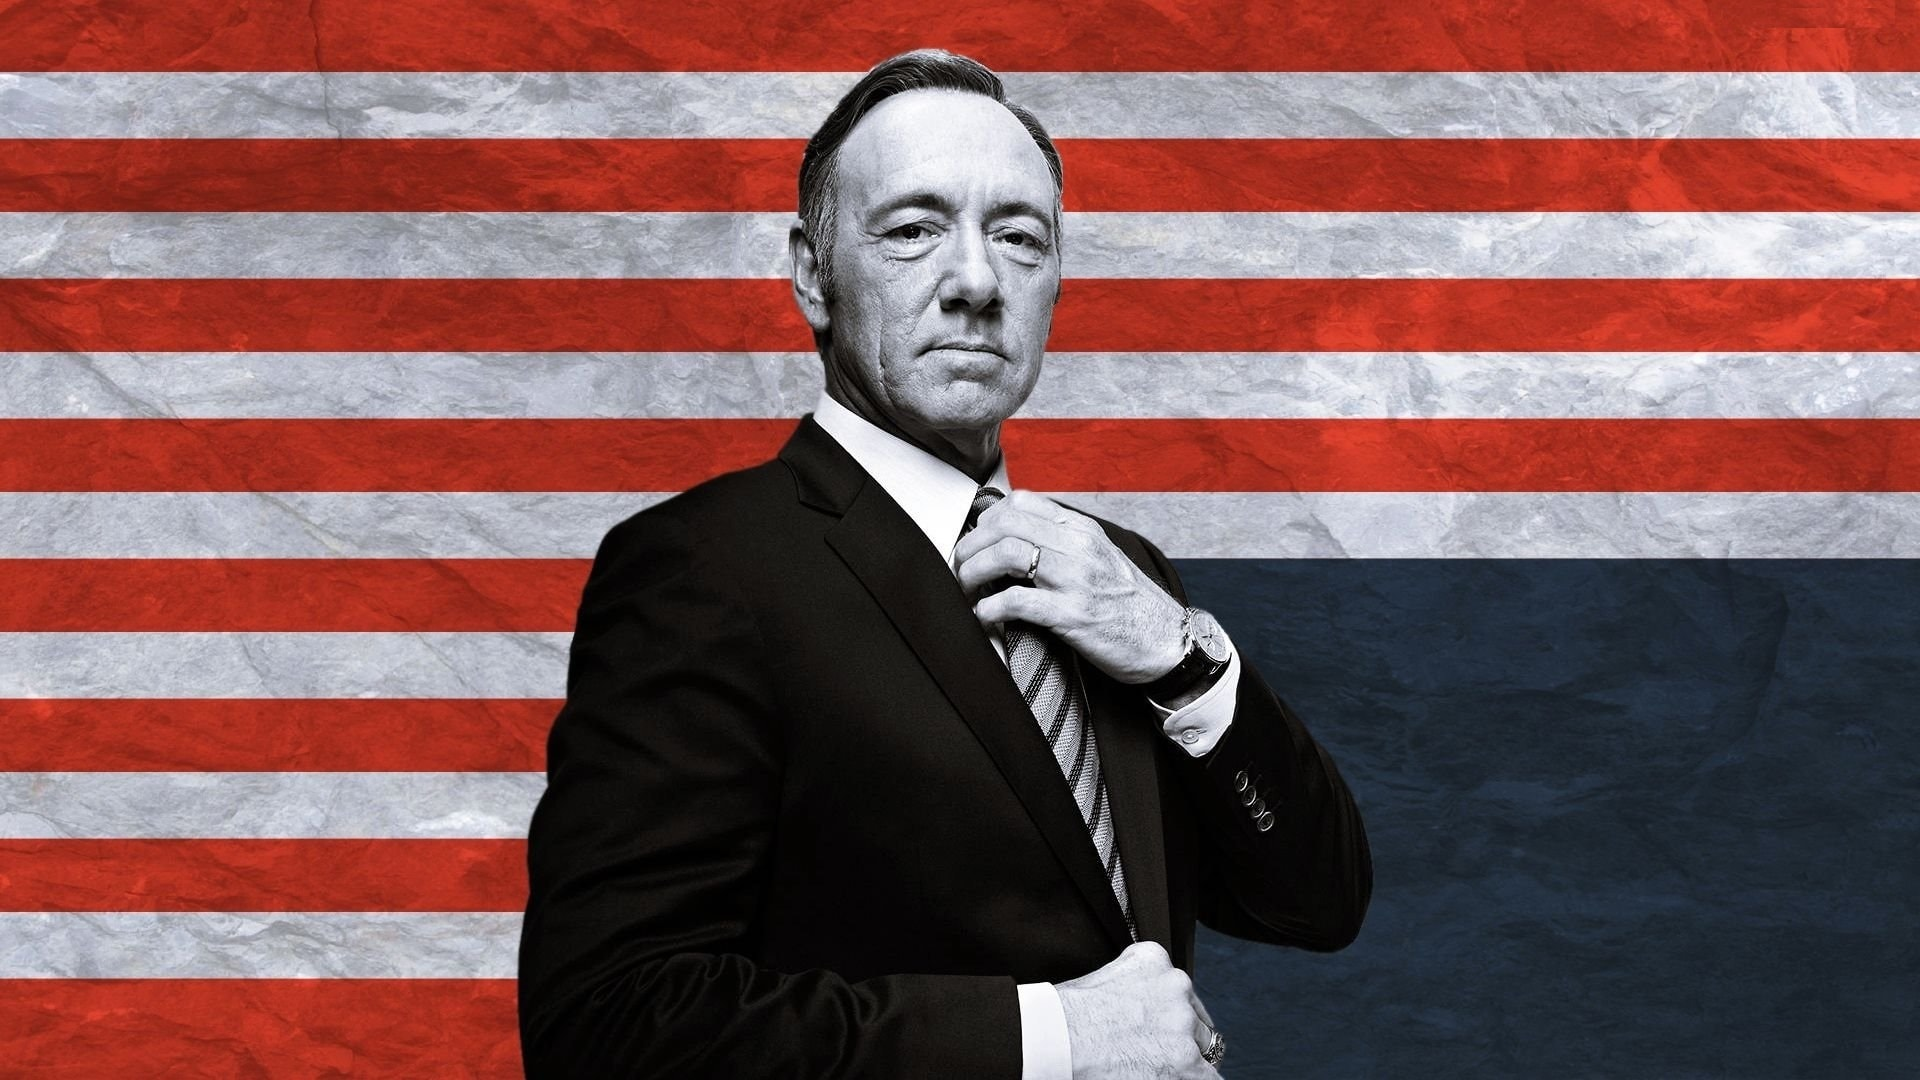 House of Cards Background